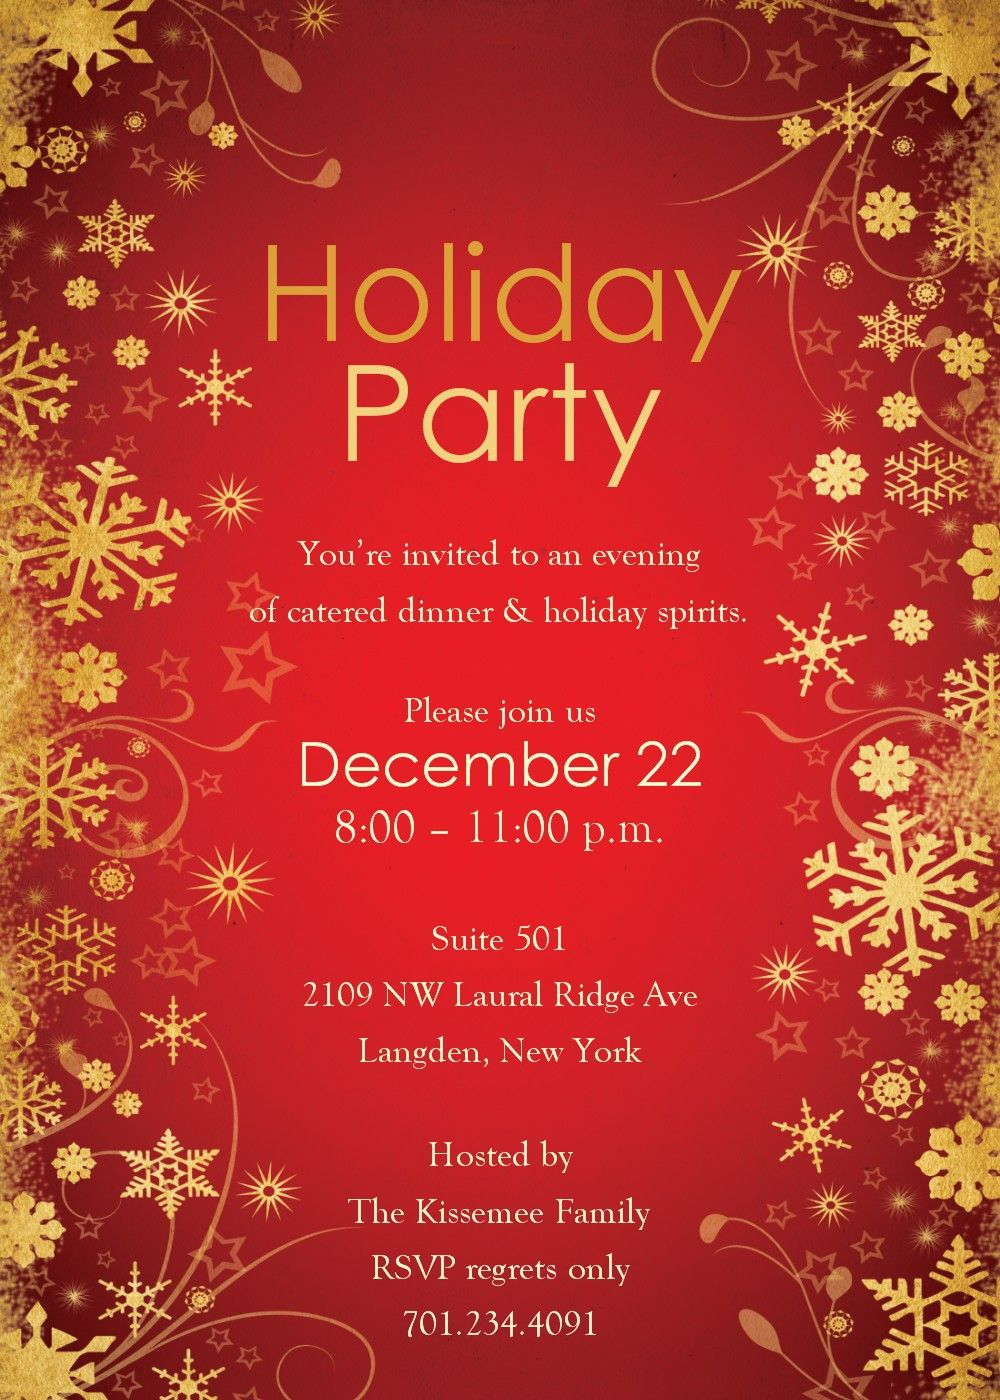 Christmas Party Invitations Templates Word – Free Christmas Templates for Word